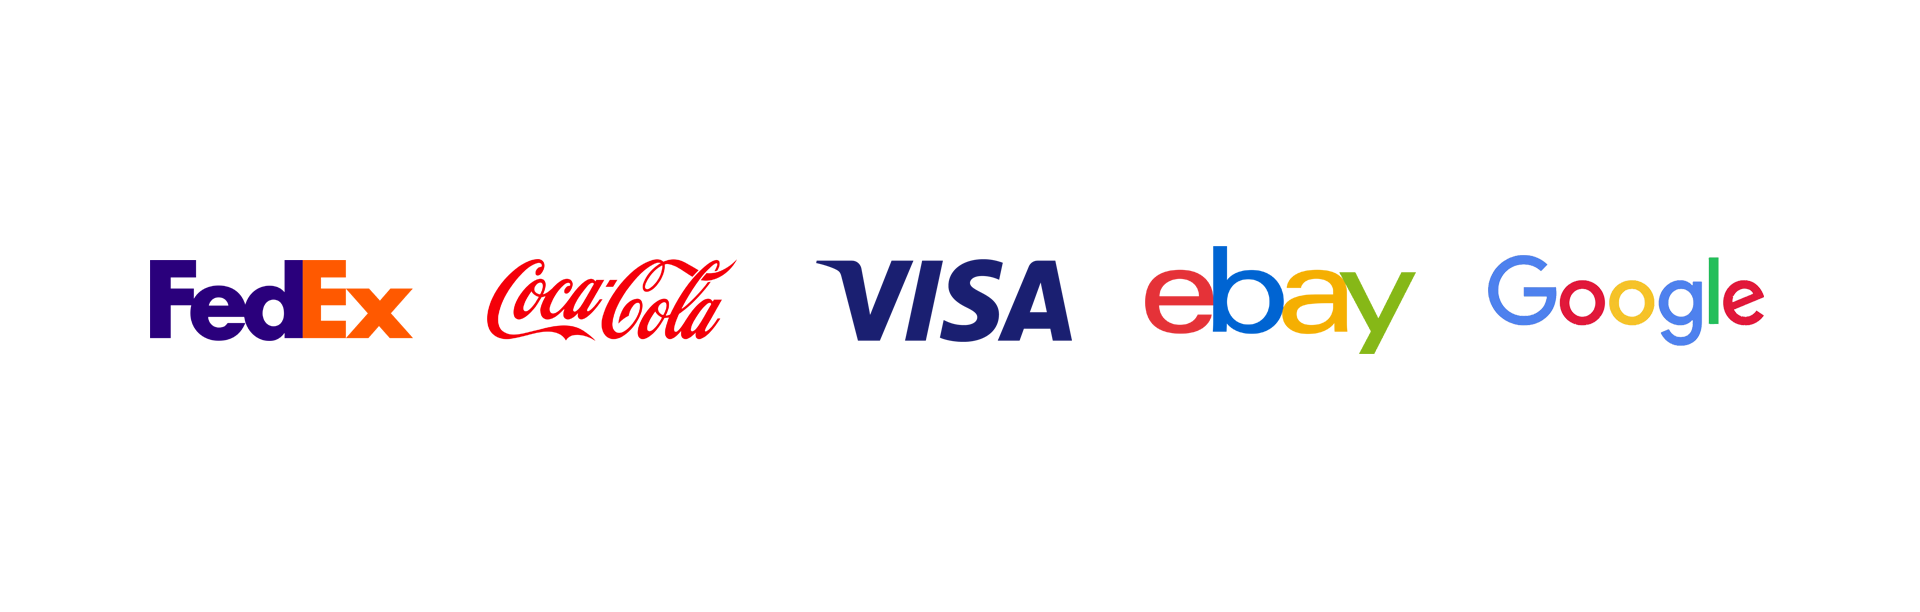 Wordmark, FedEx, Coca-Cola, Visa, eBay, Google